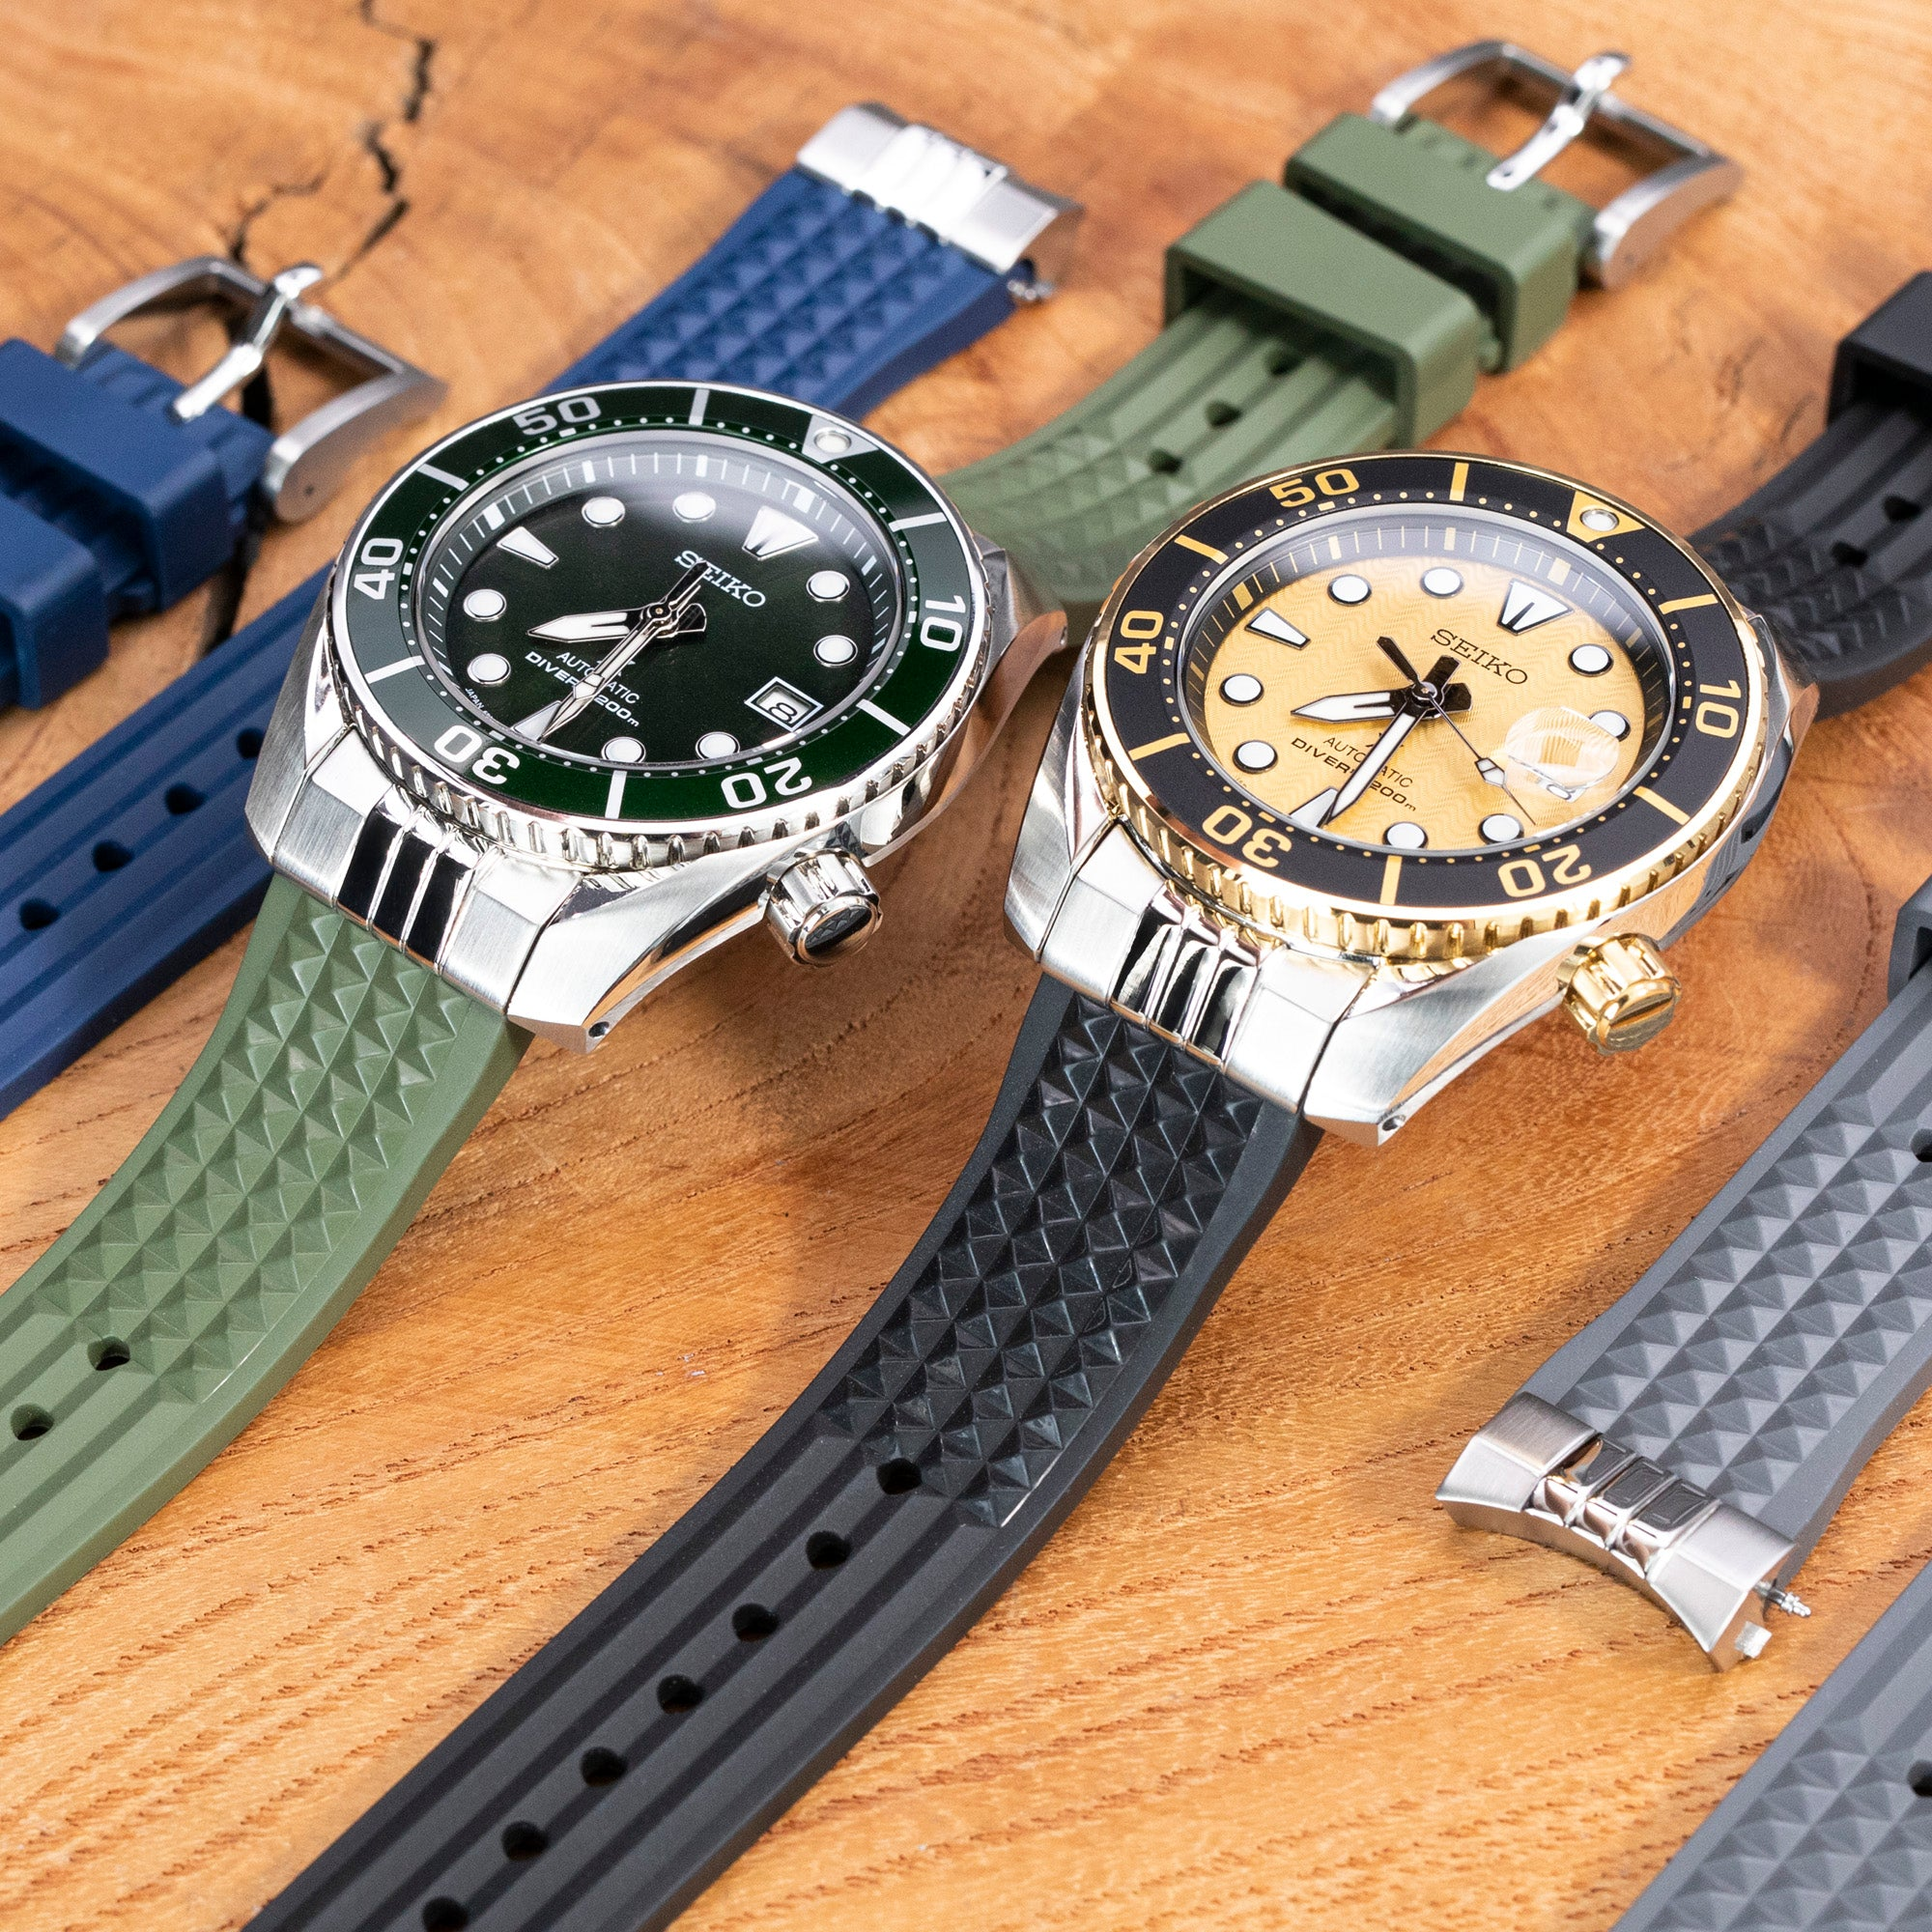 Chaffle Waffle rubber watch bands from Strapcode